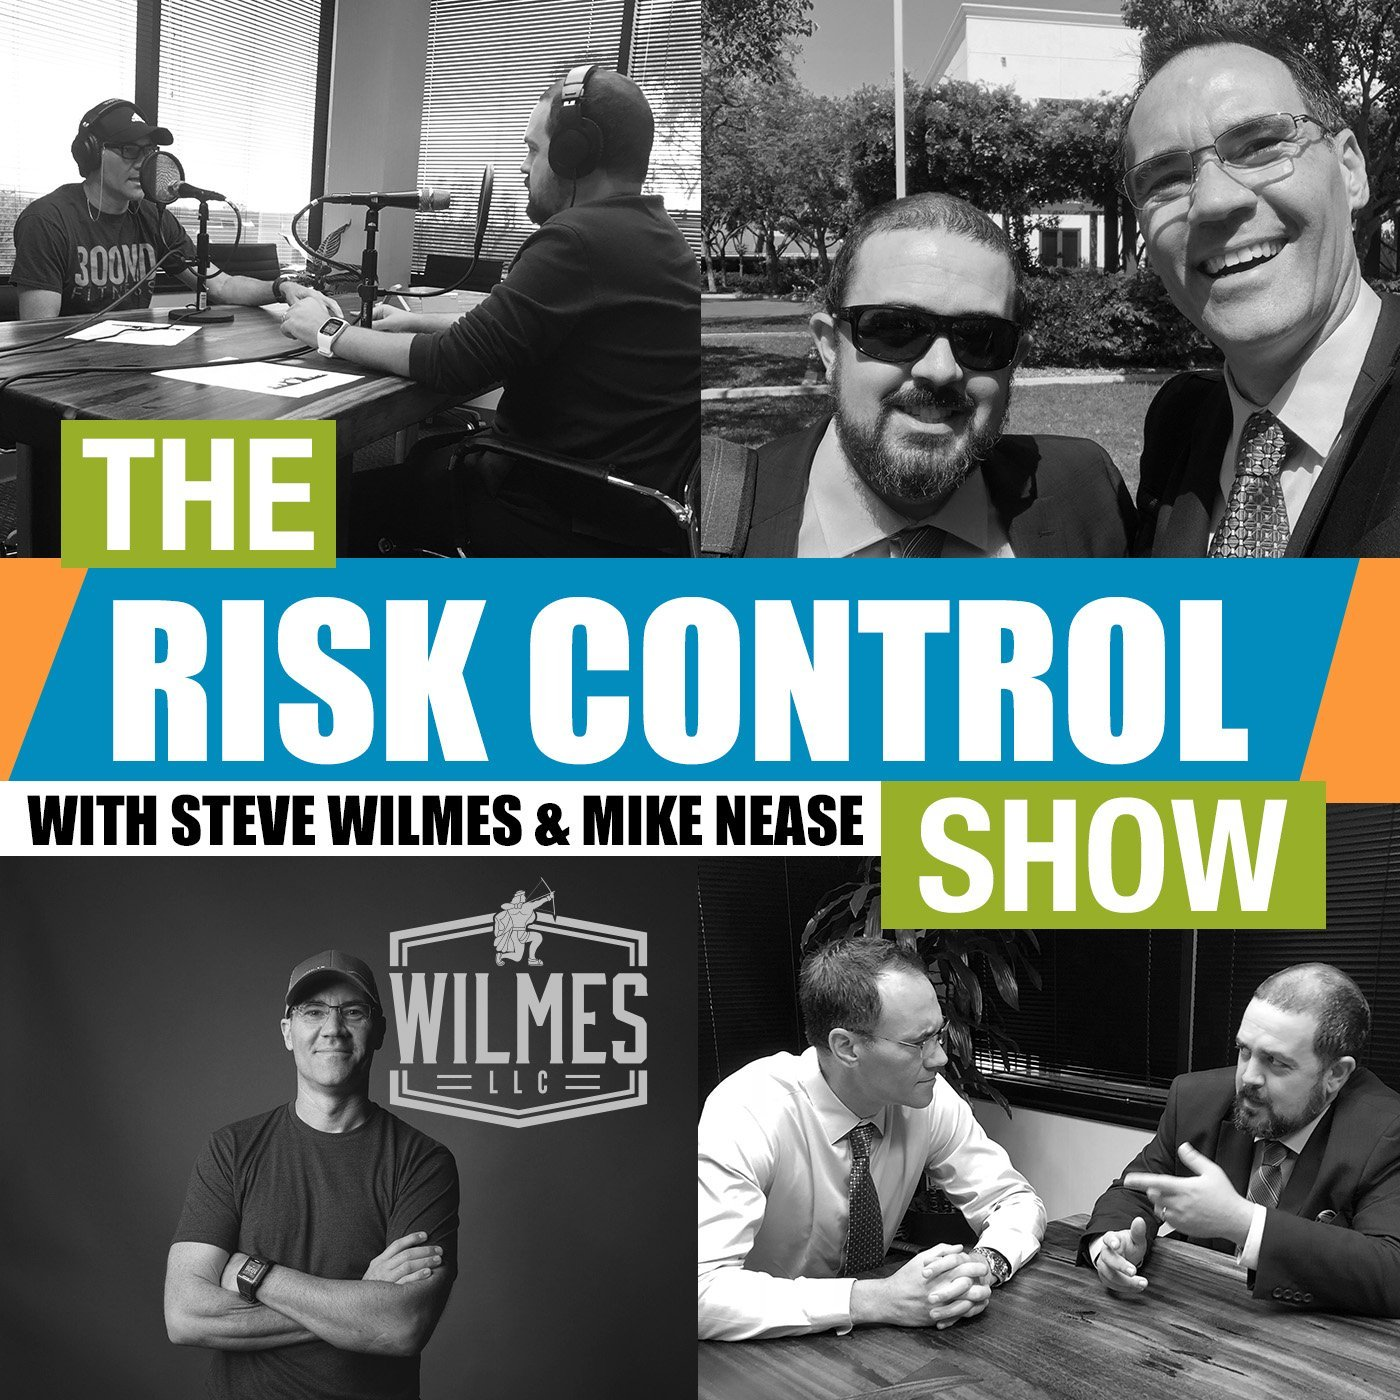 The Risk Control Show